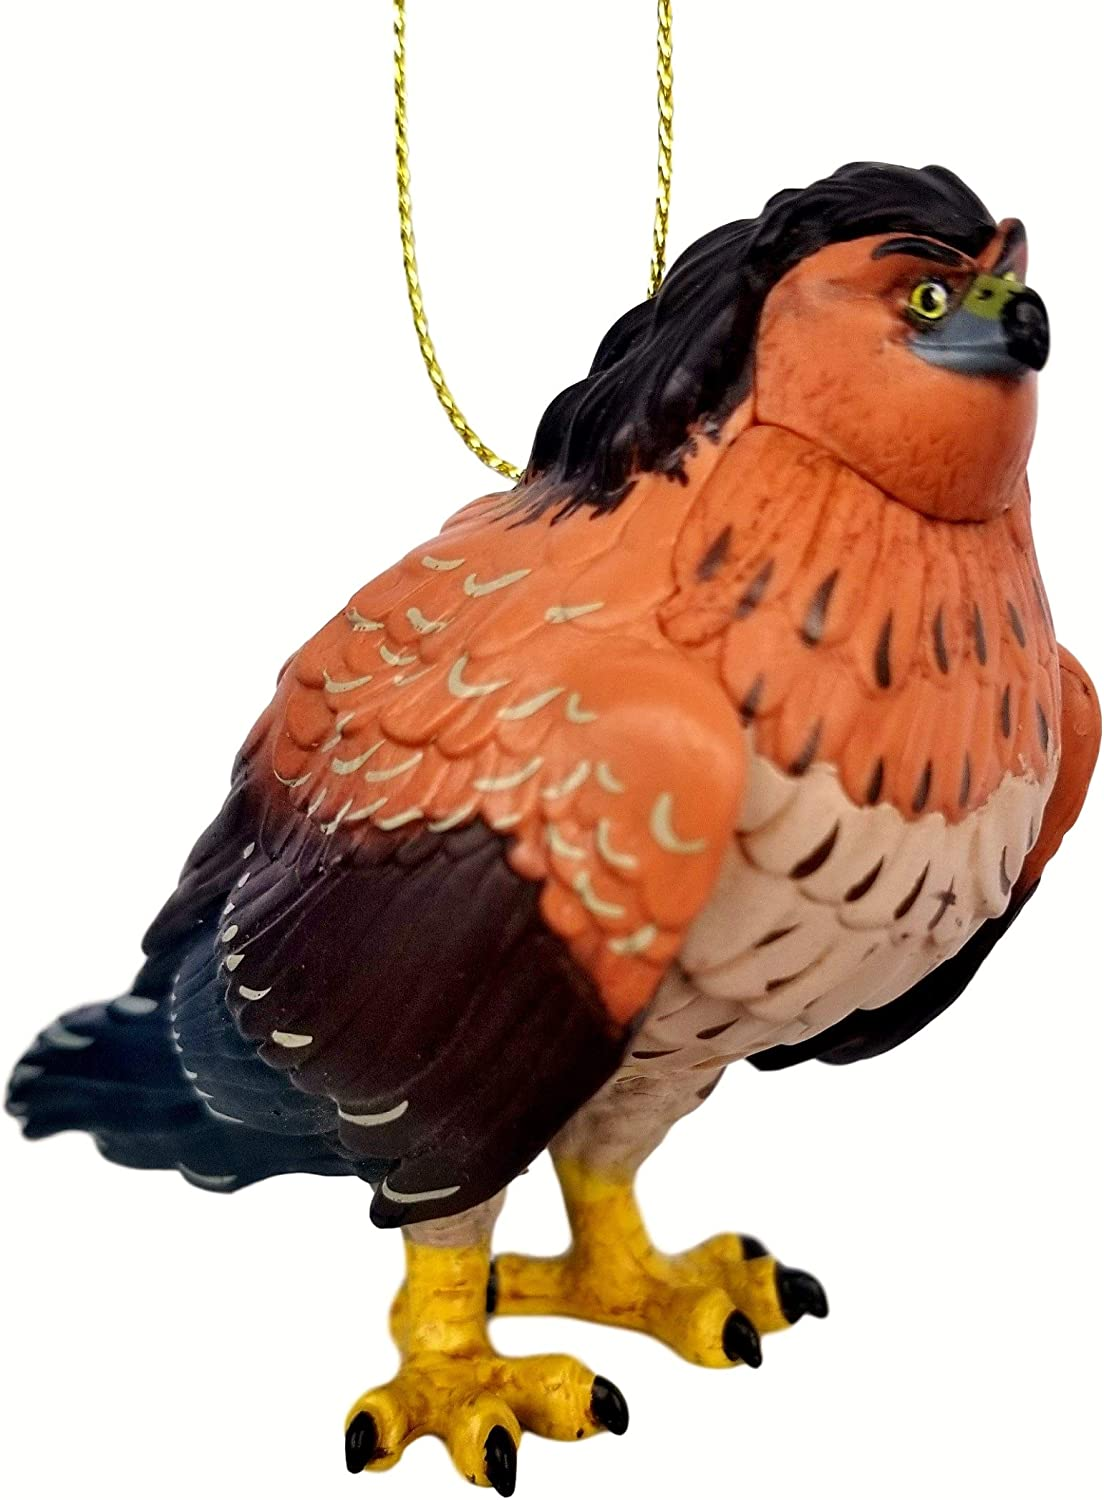 Maui Christmas Trees 2020 Amazon.com: Maui as a Hawk from Movie Moana Figurine Holiday